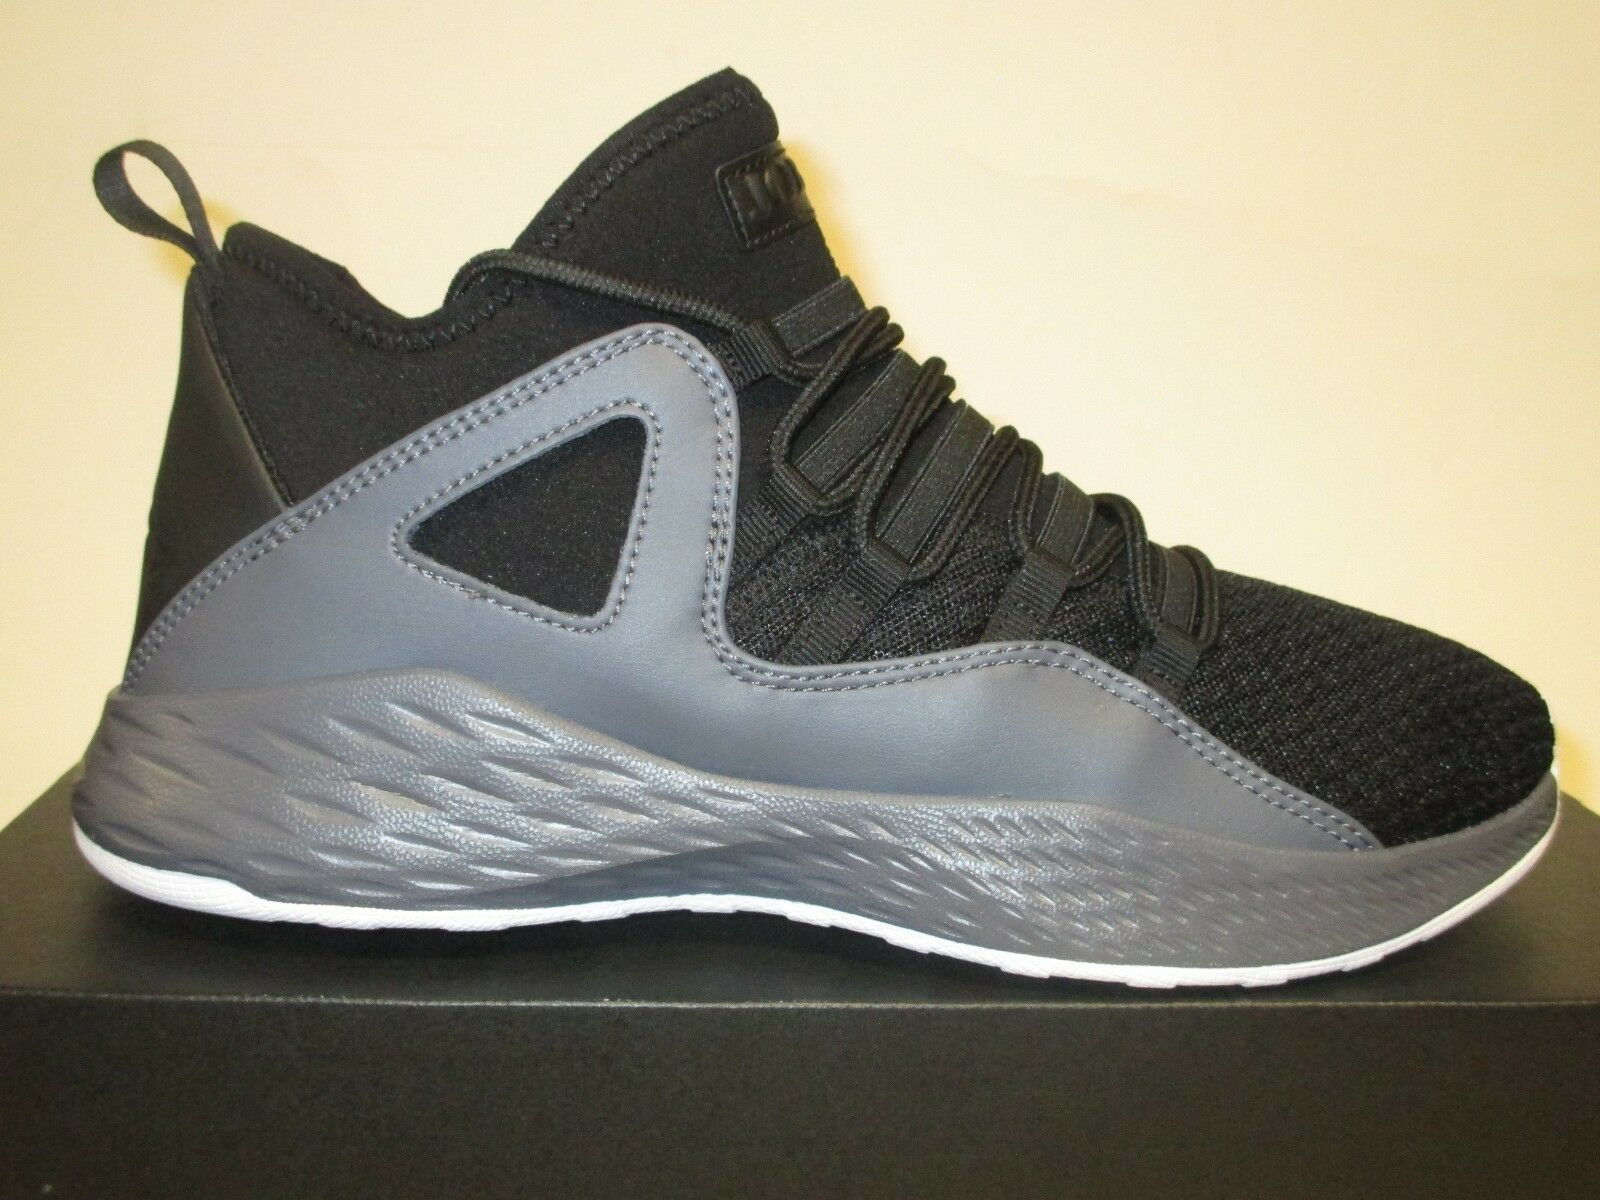 JORDAN FORMULA 23 (BLACK/DARK GRAY/WHITE) MENS BASKETBALL